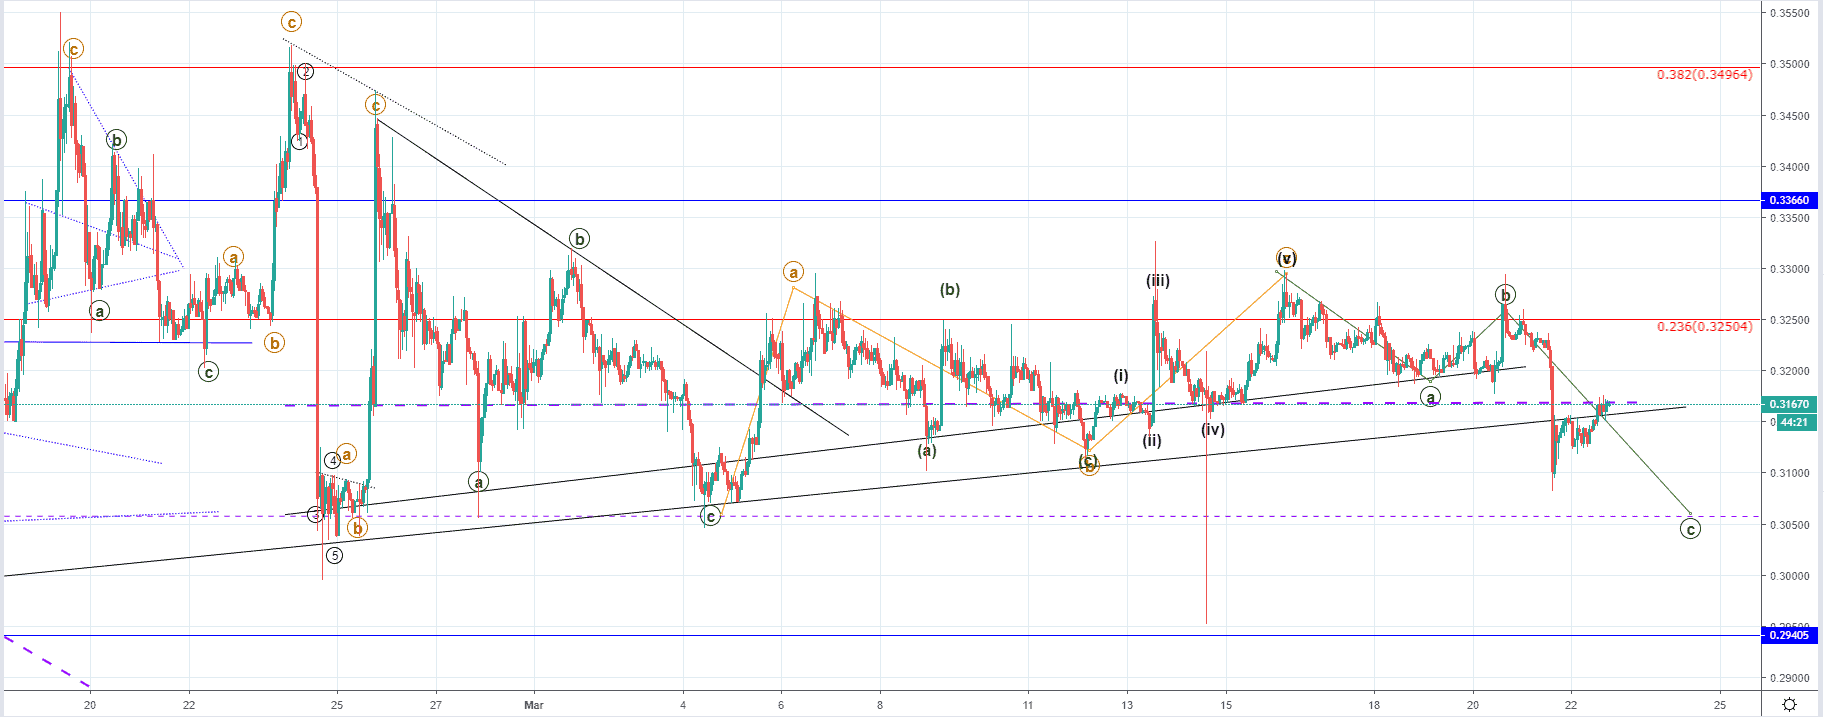 XRP/USD: A breakout from the ascending structure started